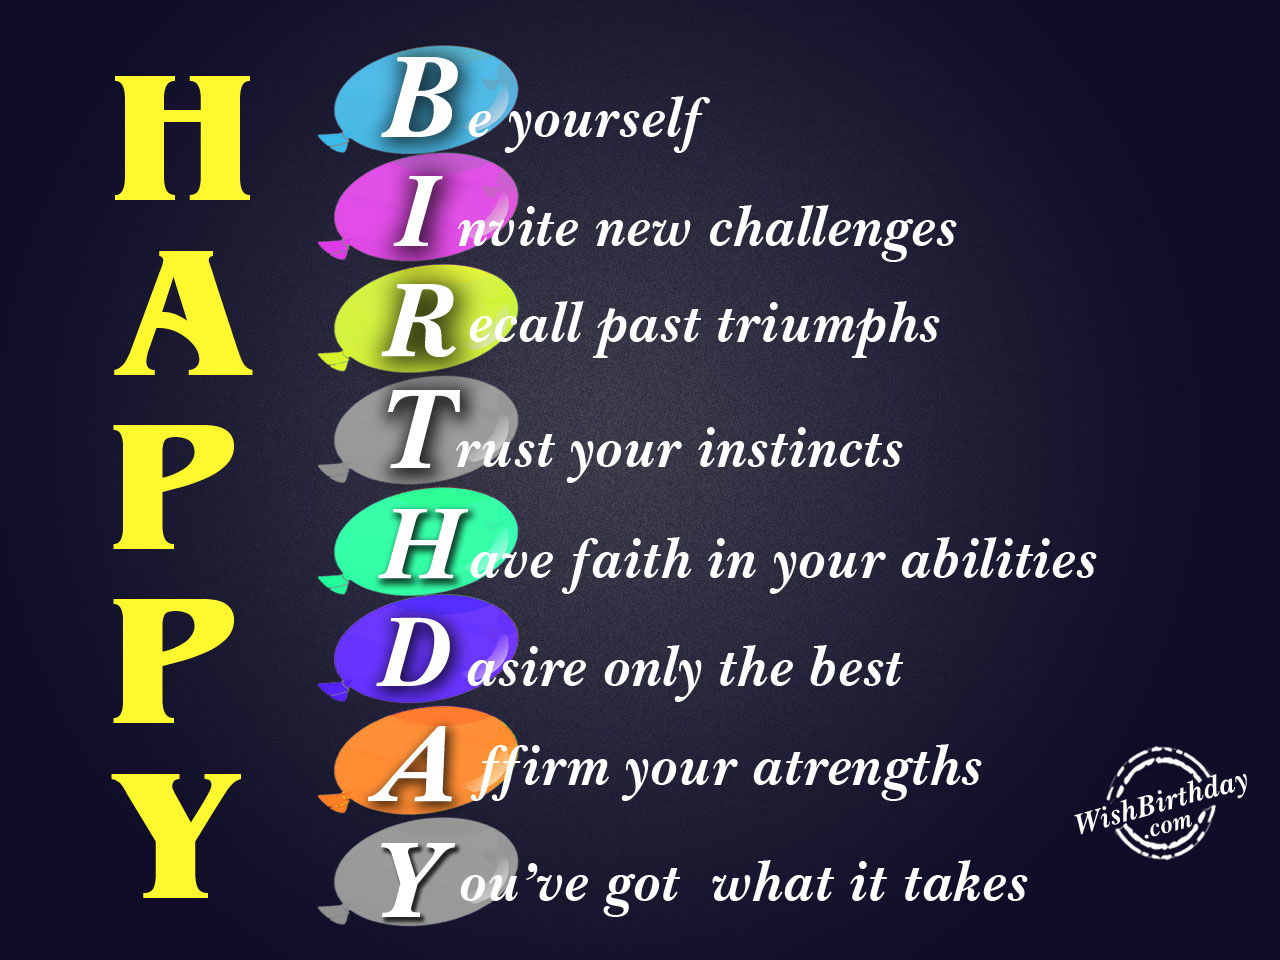 Be YourselfHappy Birthday WB06